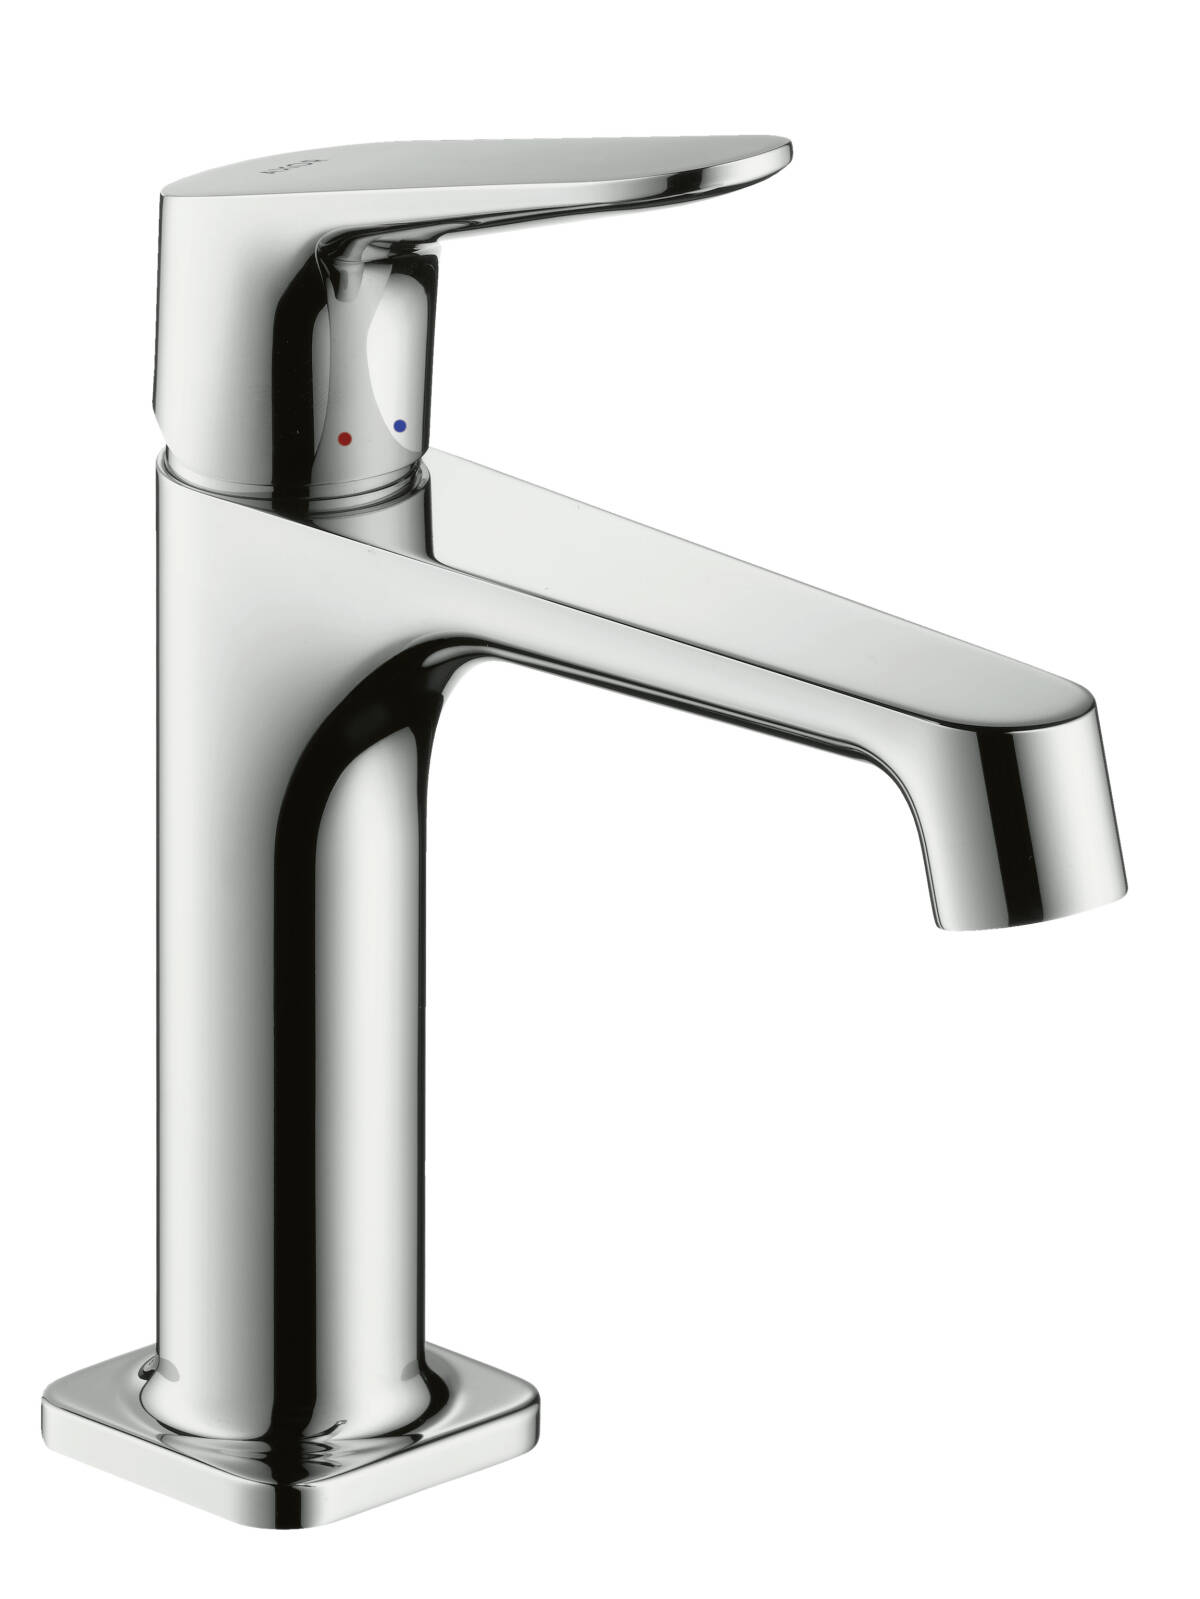 Single lever basin mixer 100 with waste set, Chrome, 34017000